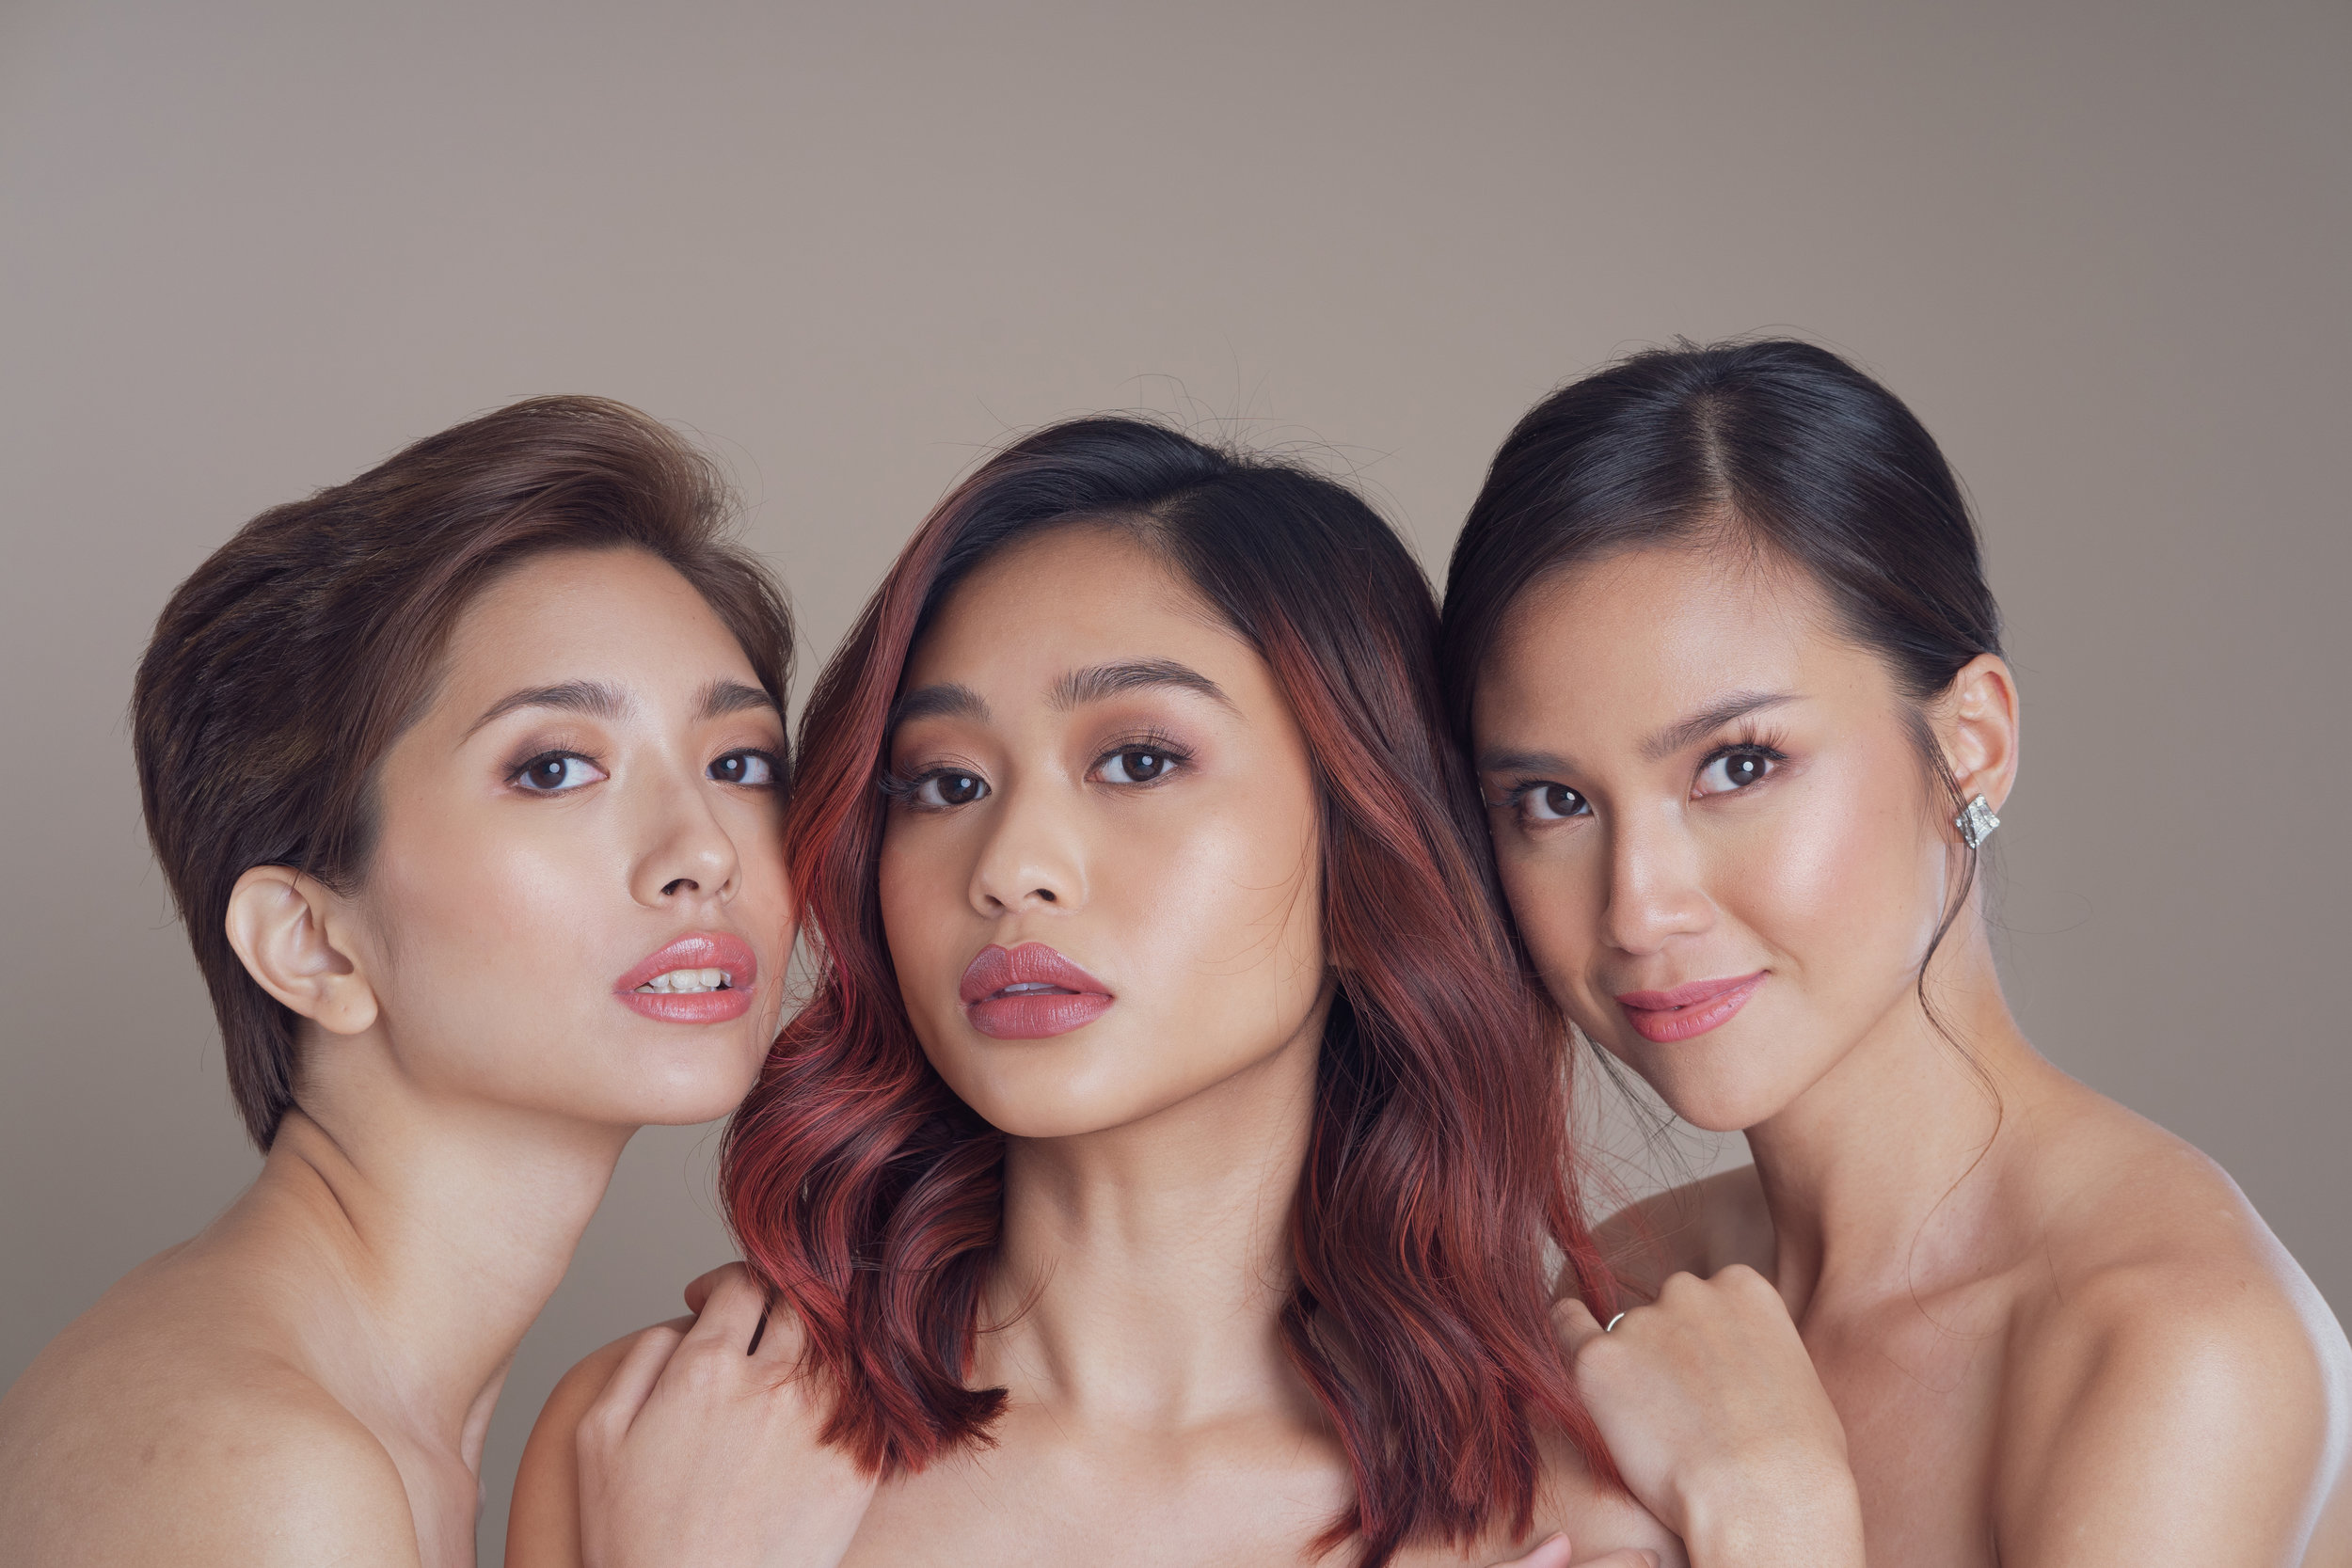 Models: Gabbie Abesamis, Zap, Sara de Guzman  Photo by James Lontoc  Hair by Albert Muyo  Makeup by Poi Jakosalem